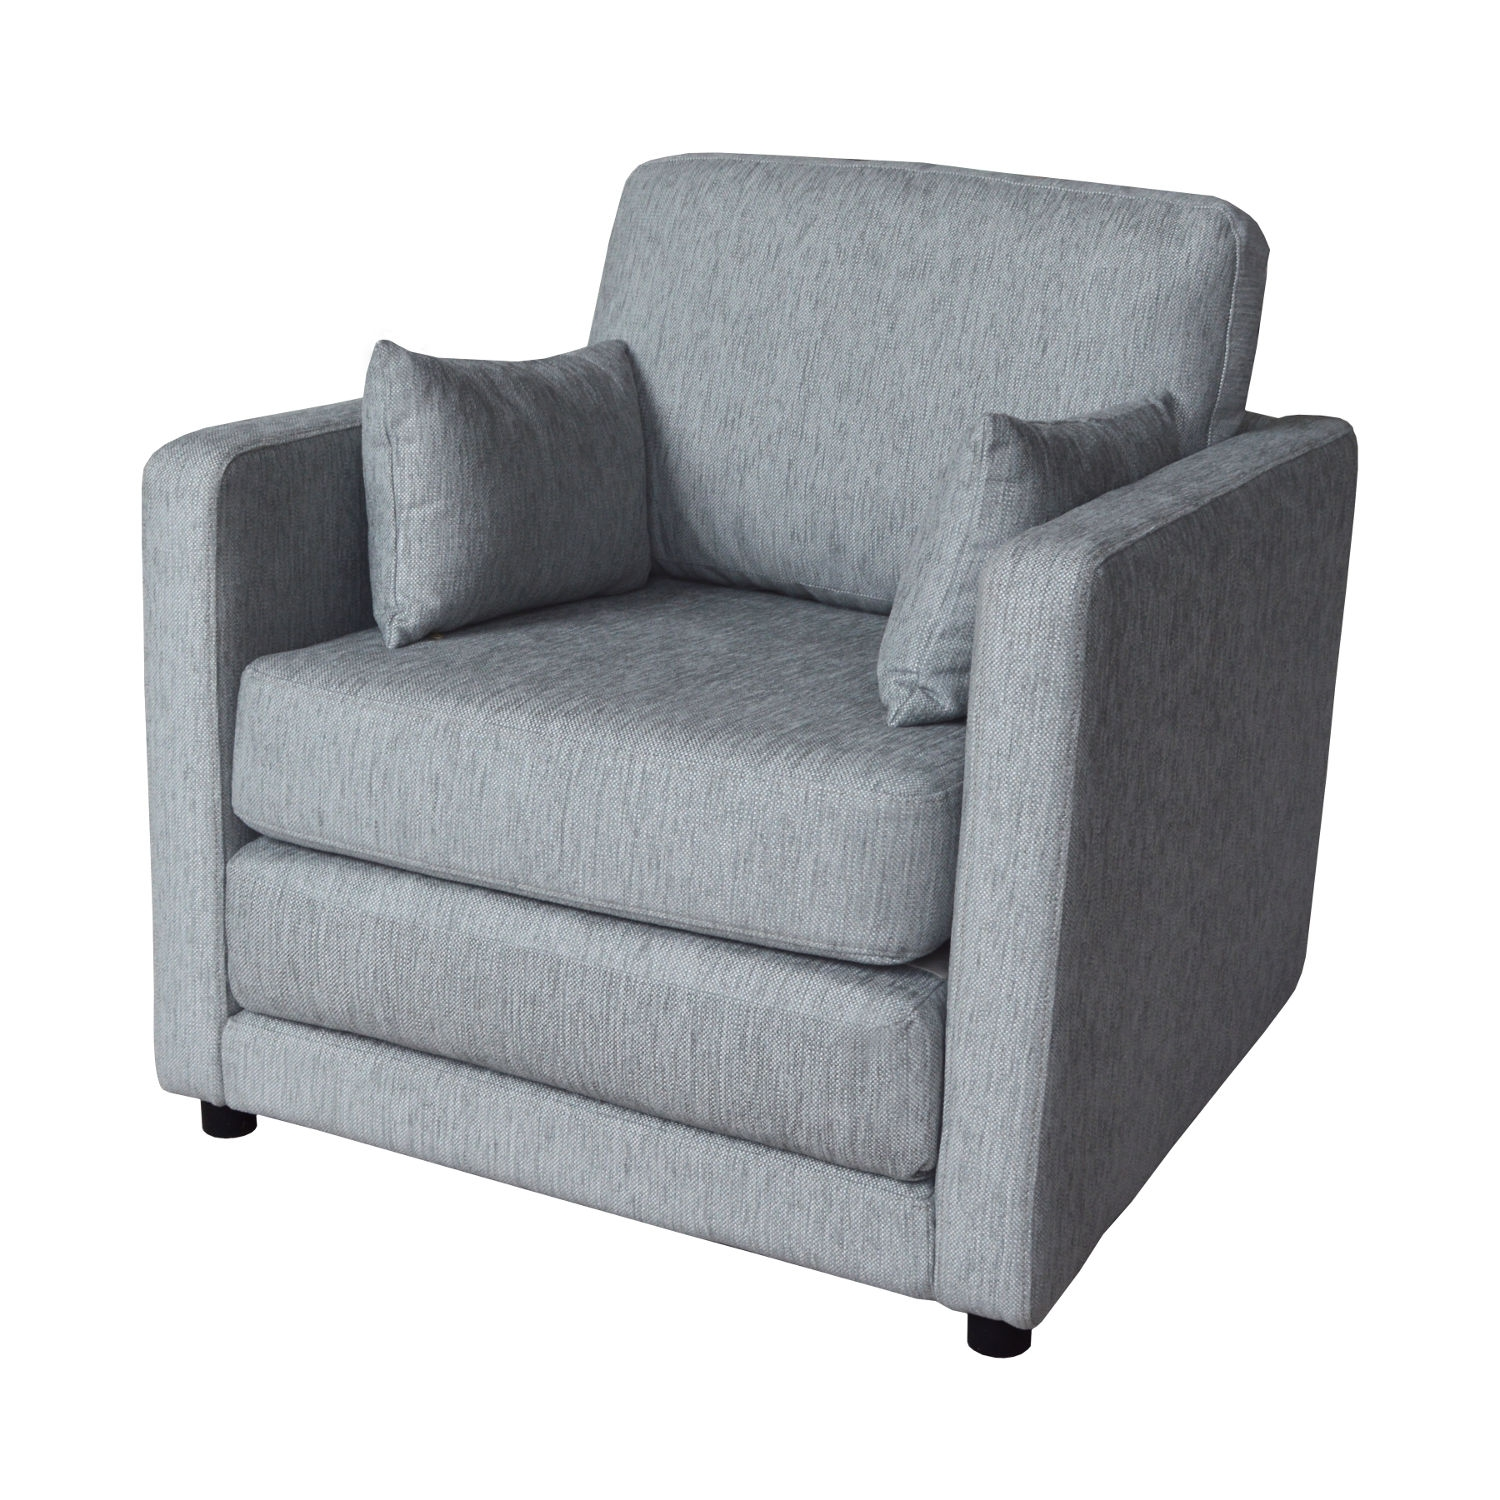 Chair Sofa Sleeper Chair Klaussner Tilly Small Sleeper Sofa With For Sofa Bed Chairs (Image 9 of 15)